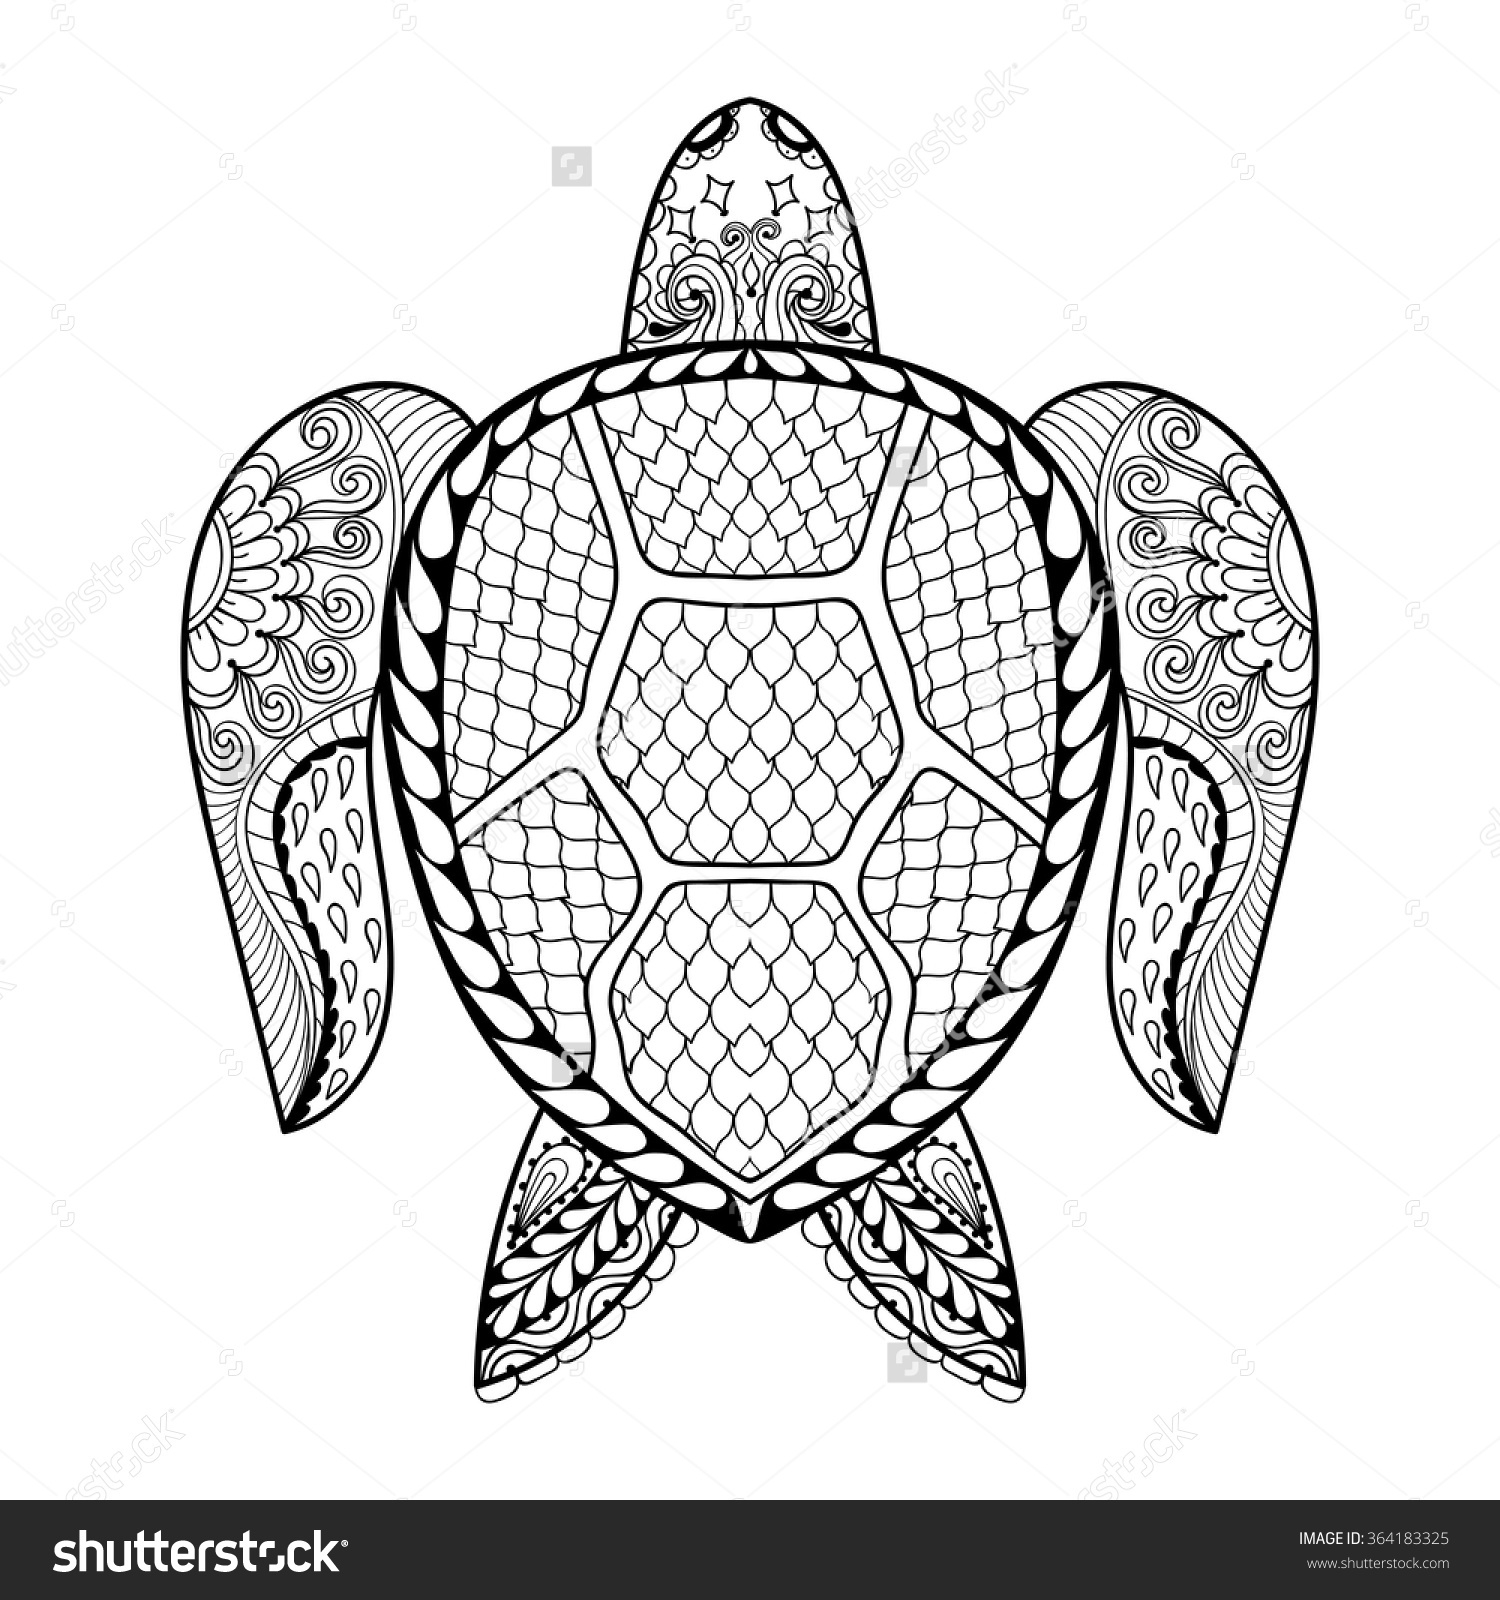 Leatherback Sea Turtle Coloring Page At Getcolorings